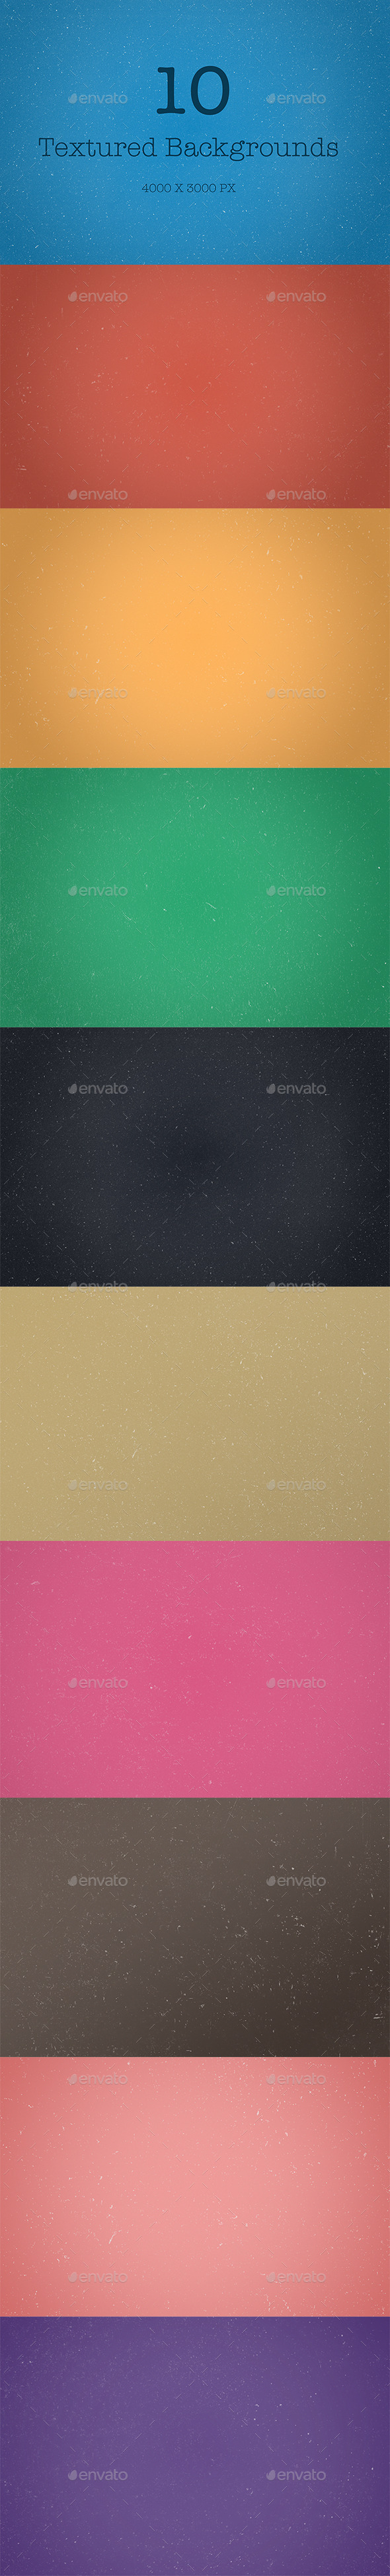 10 Textured Backgrounds - Backgrounds Graphics